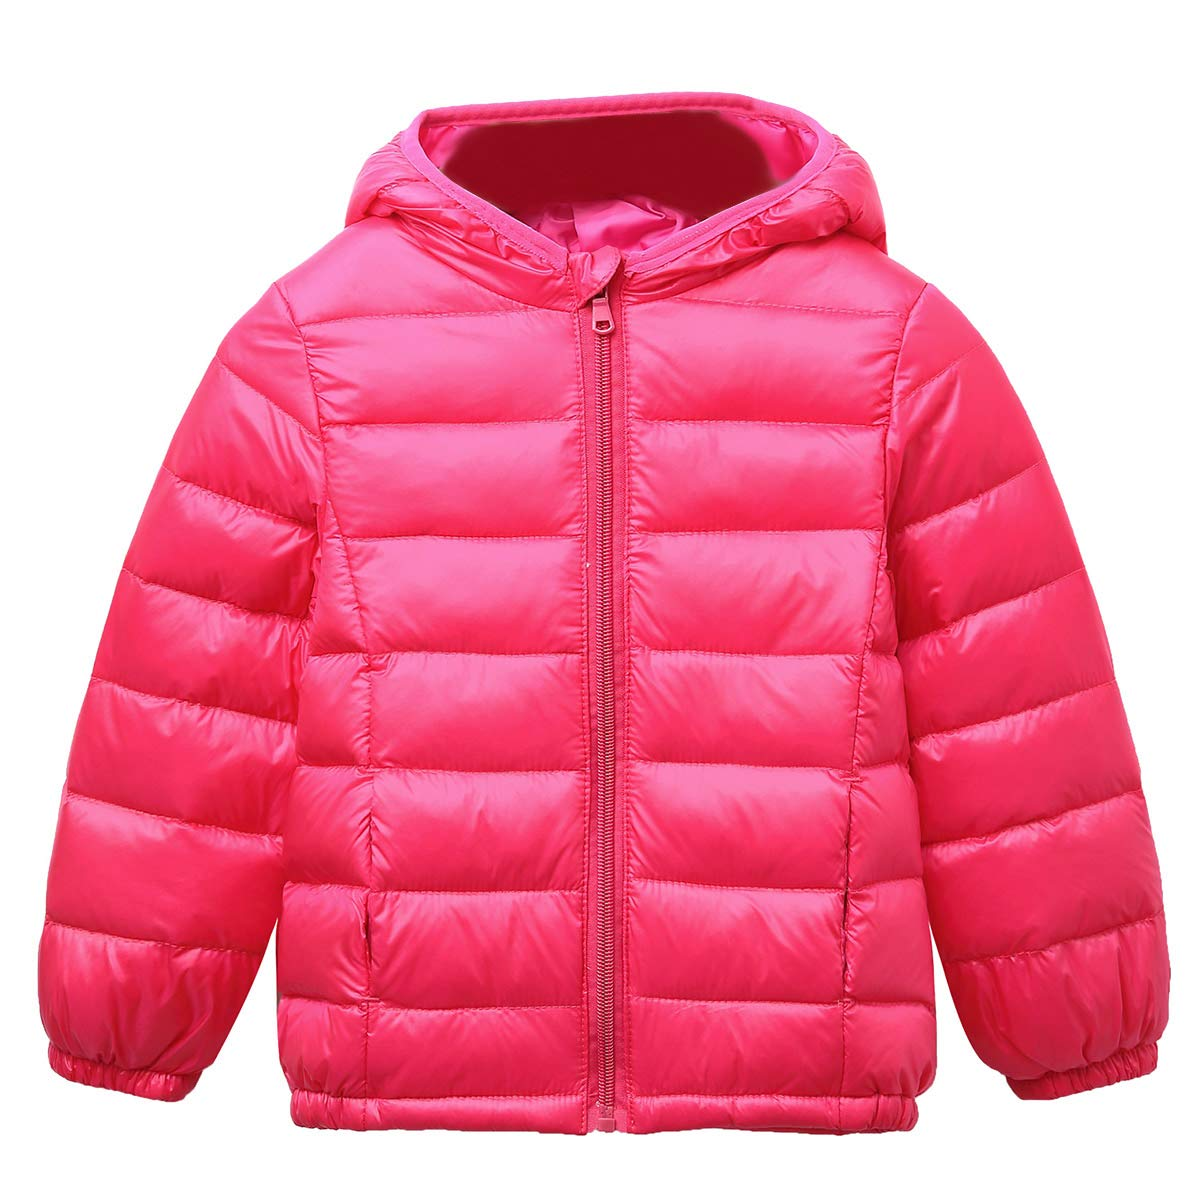 Happy Cherry Kids Baby Girls Boys Lightweight Winter Puffer Coat Down Jacket Outwear with Warm Hood Rose Red Size 130cm by Happy Cherry